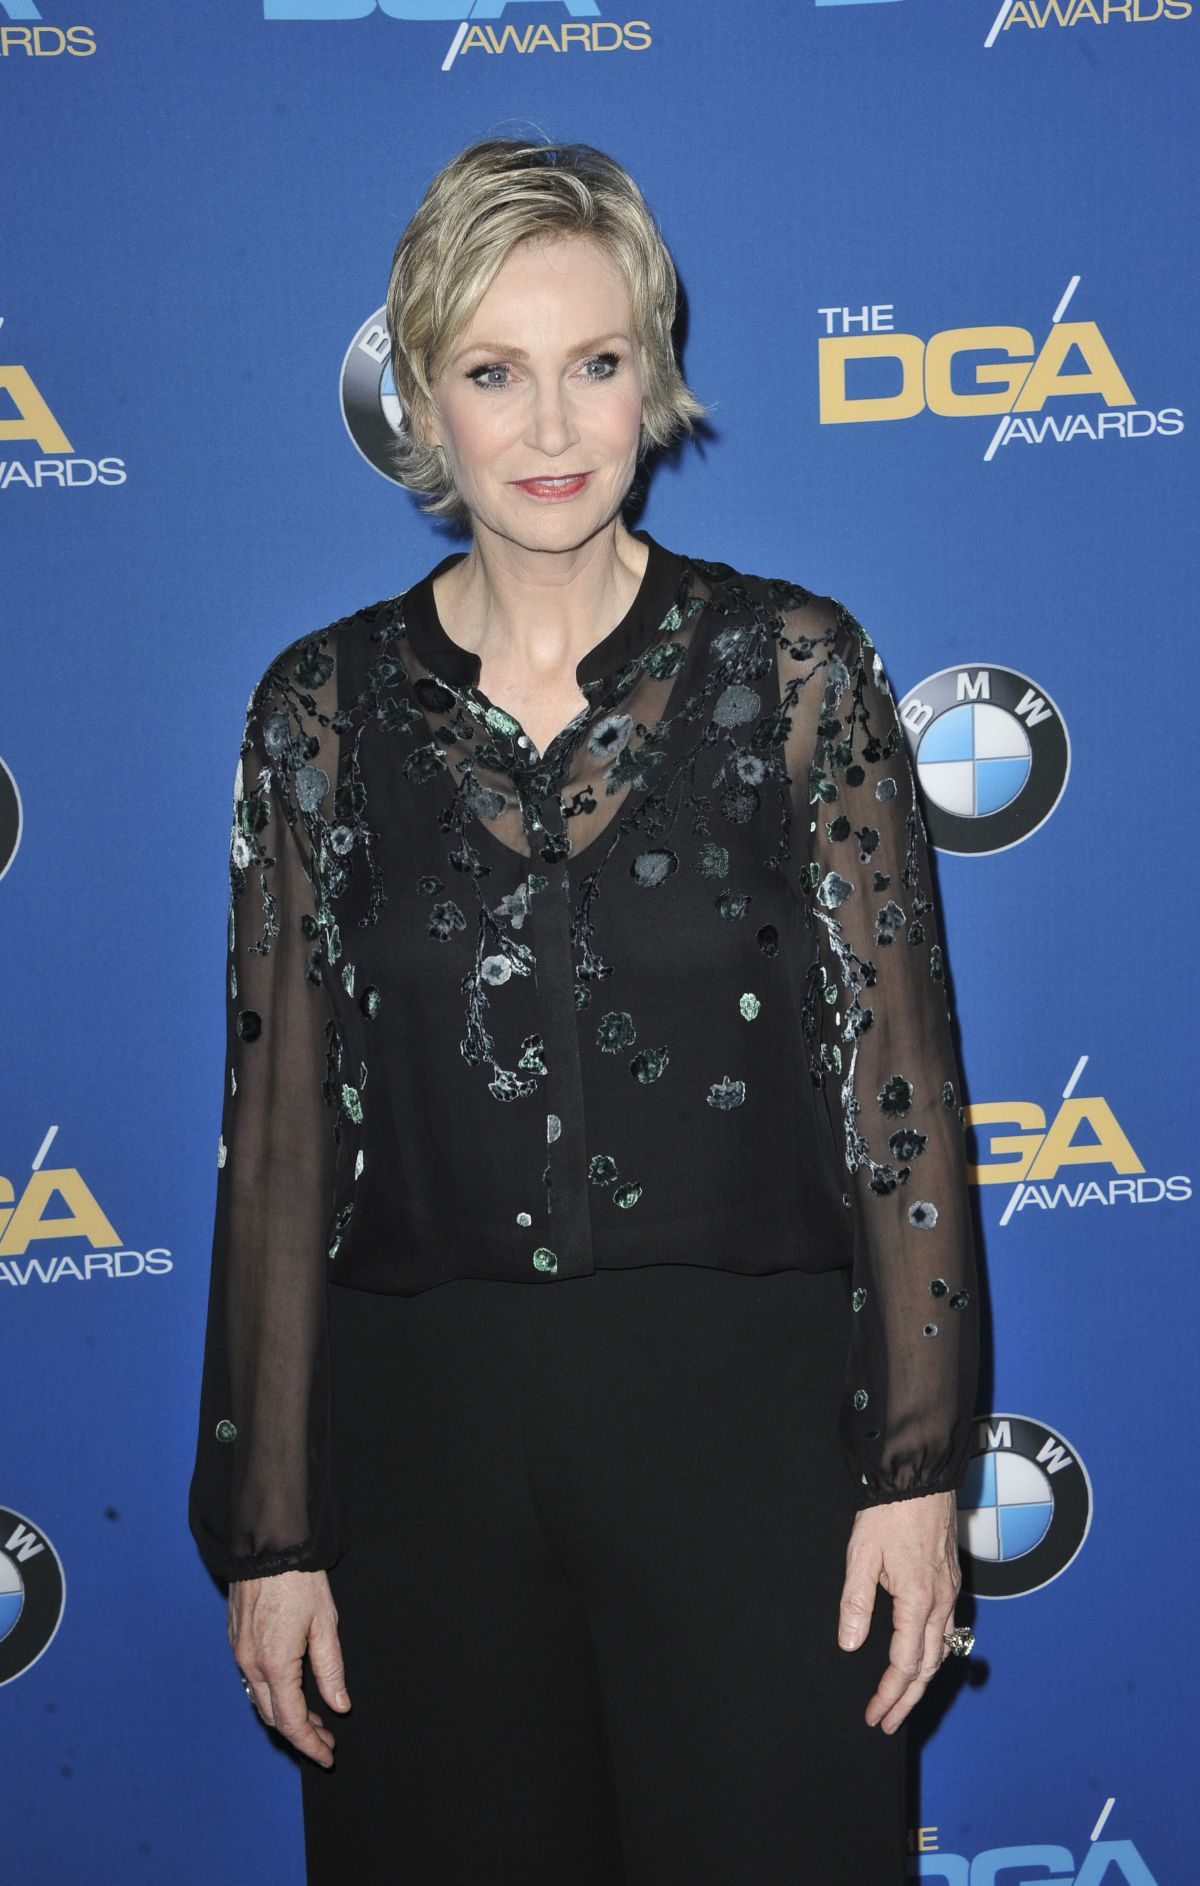 JANE LYNCH at 31st Annual ASC Awards for Cinematography in Hollywood 02/04/2017